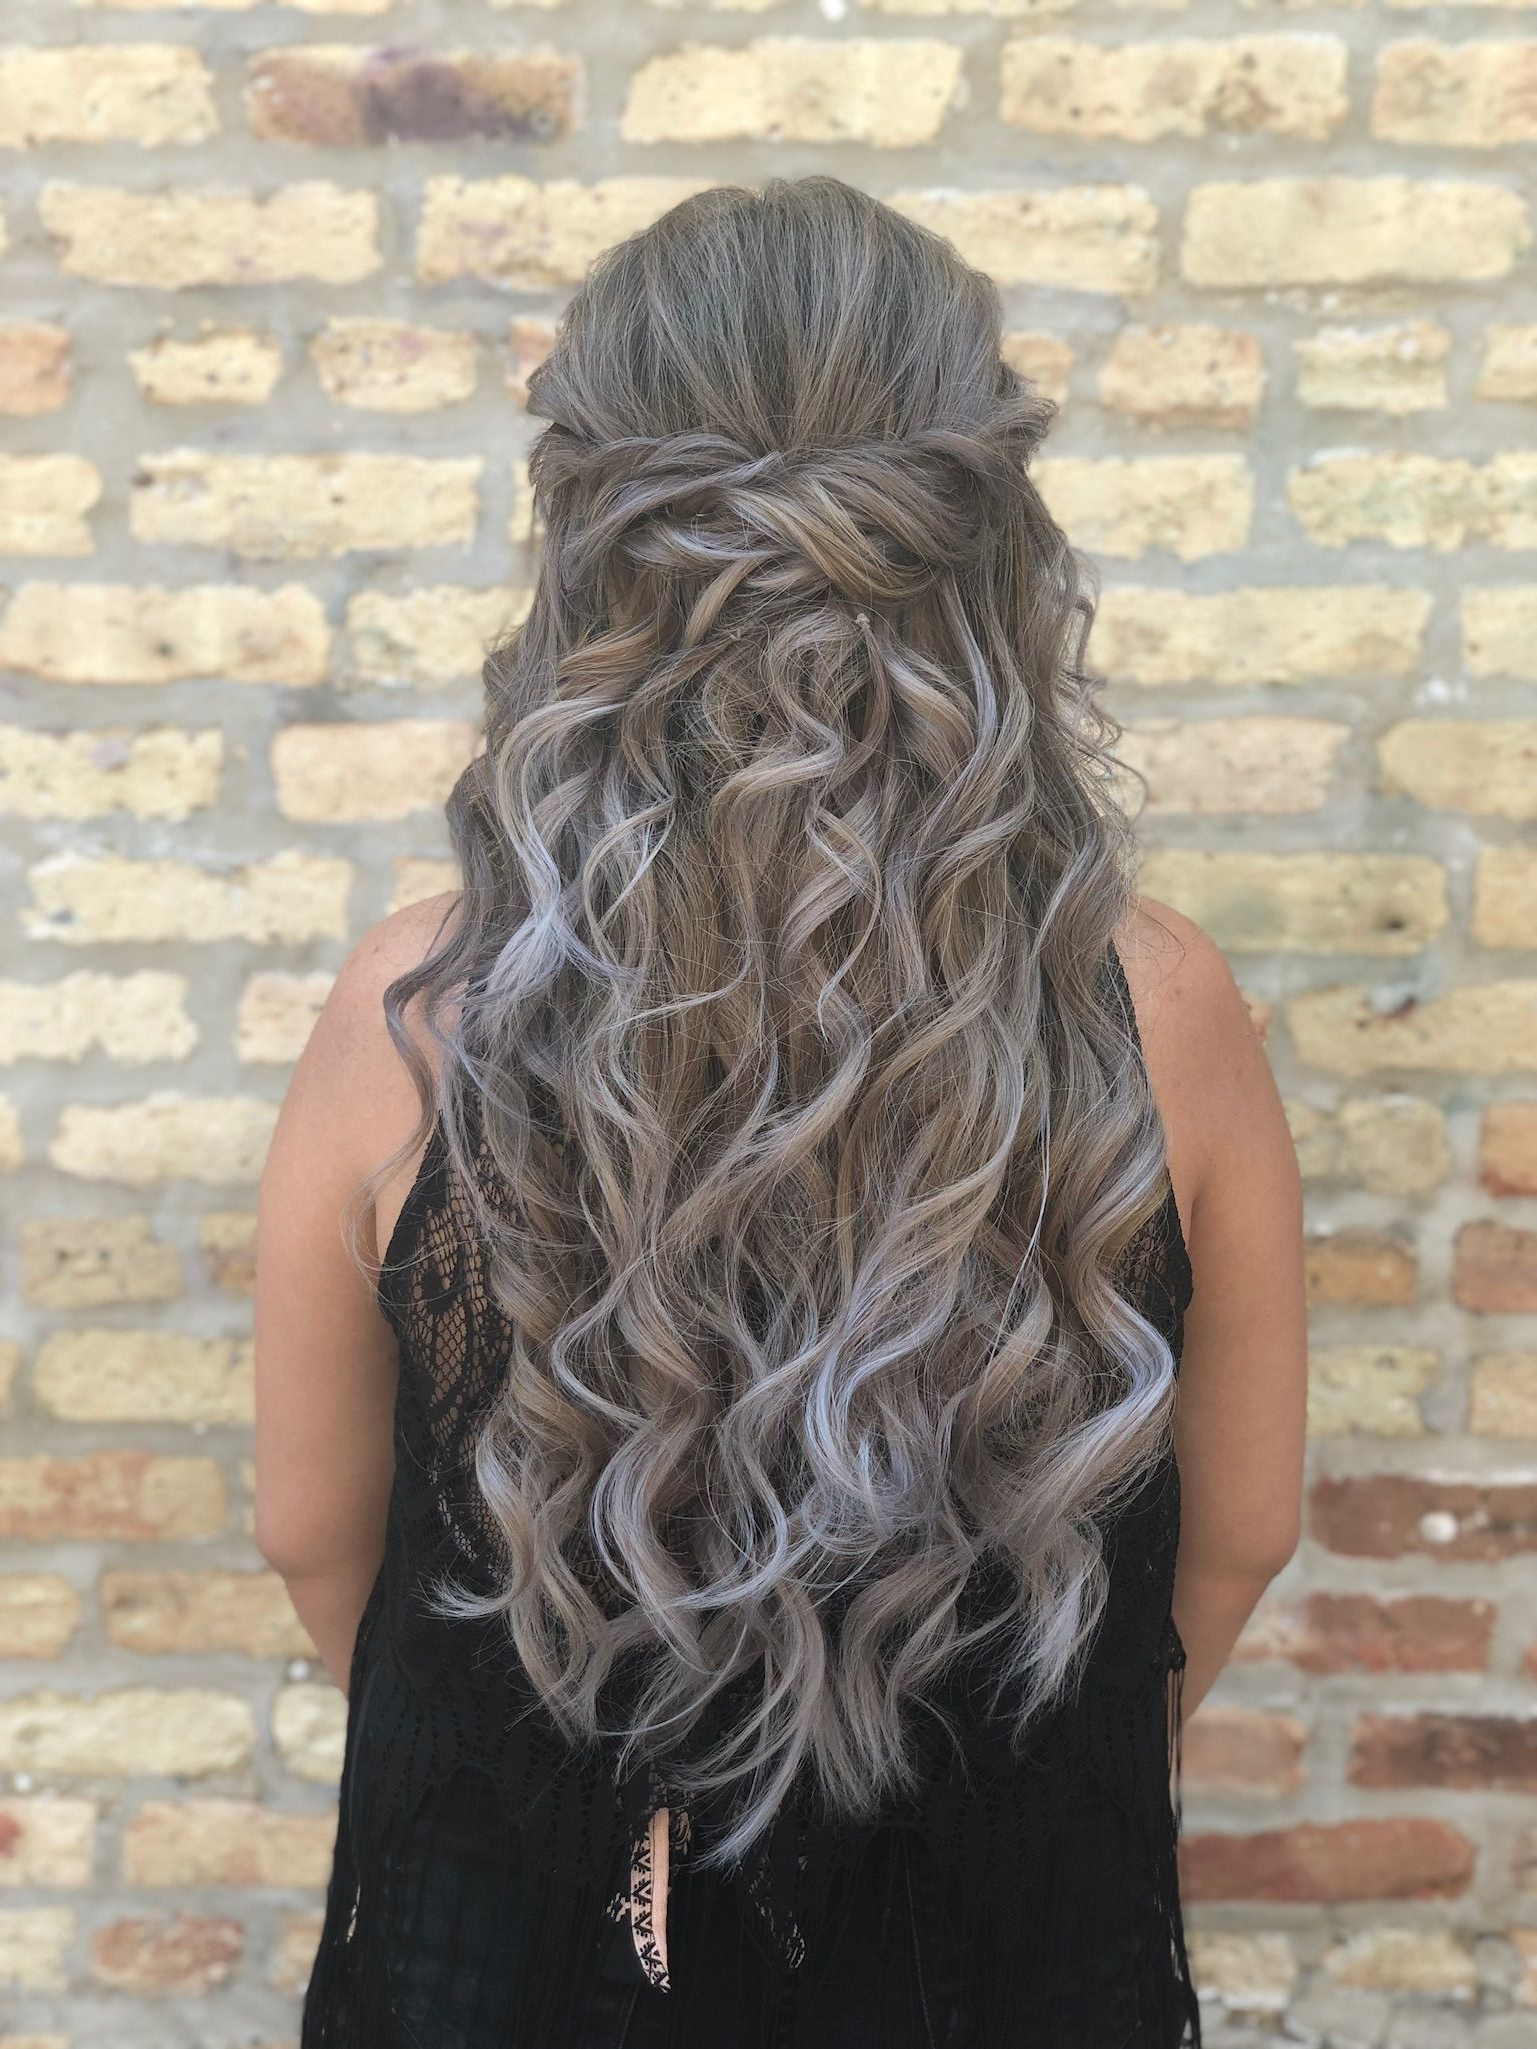 Waves Look Great On Every Hair Length, But This Hair Model's With Regard To Current Cascading Waves Prom Hairstyles For Long Hair (Gallery 5 of 20)